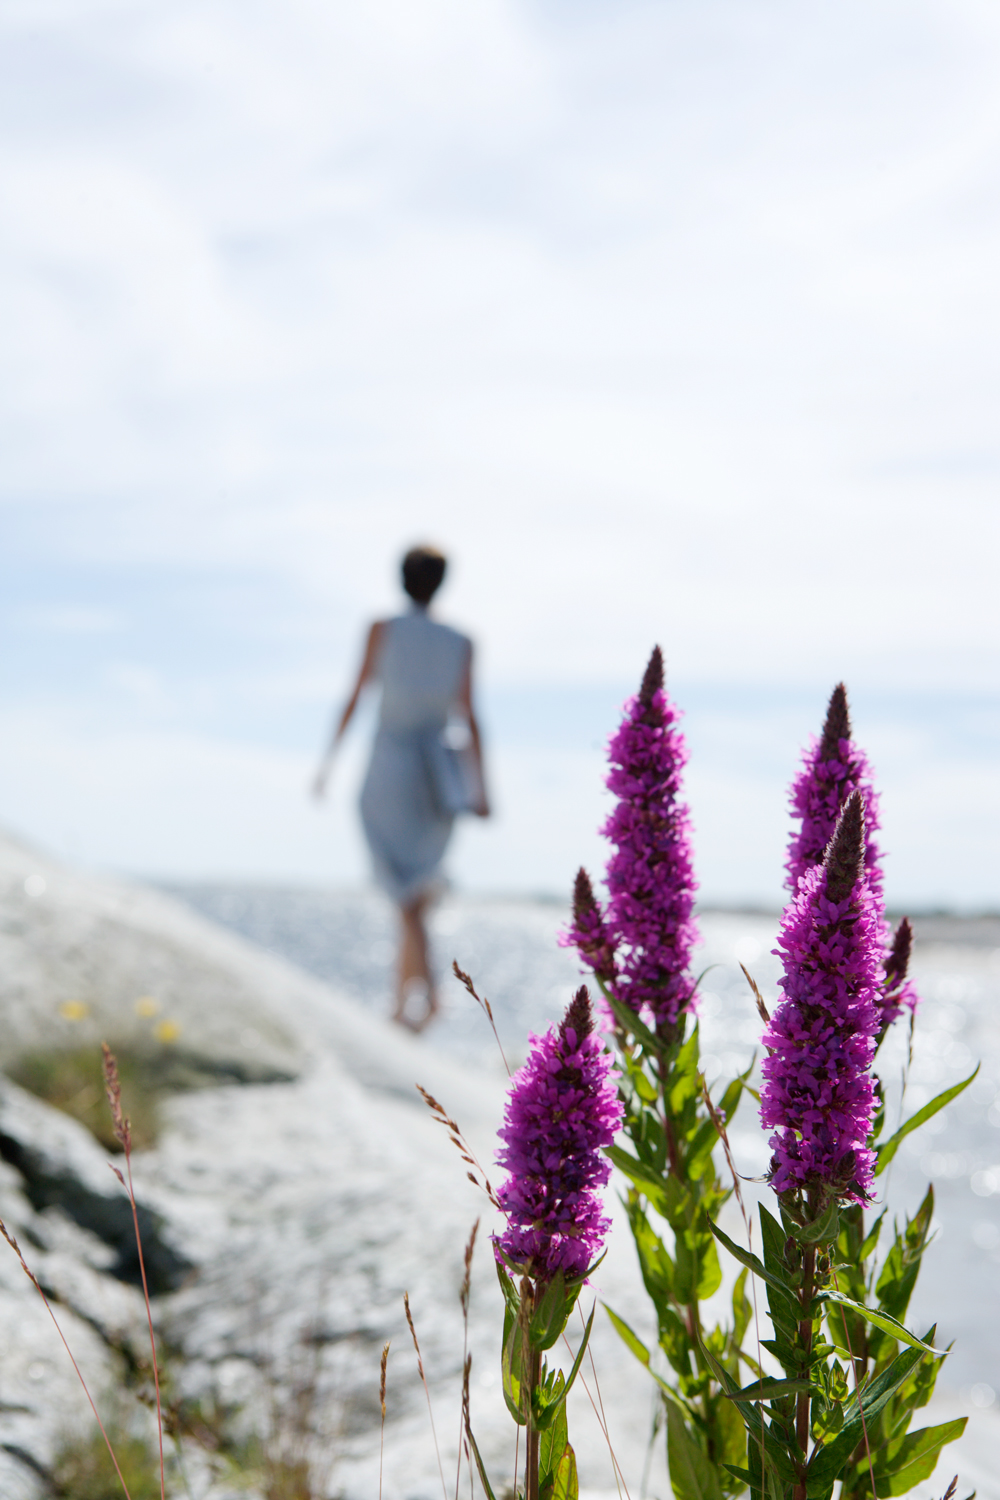 Early purple orchids grow in open meadows and pastures. Remember all orchids are protected - enjoy them where they are!